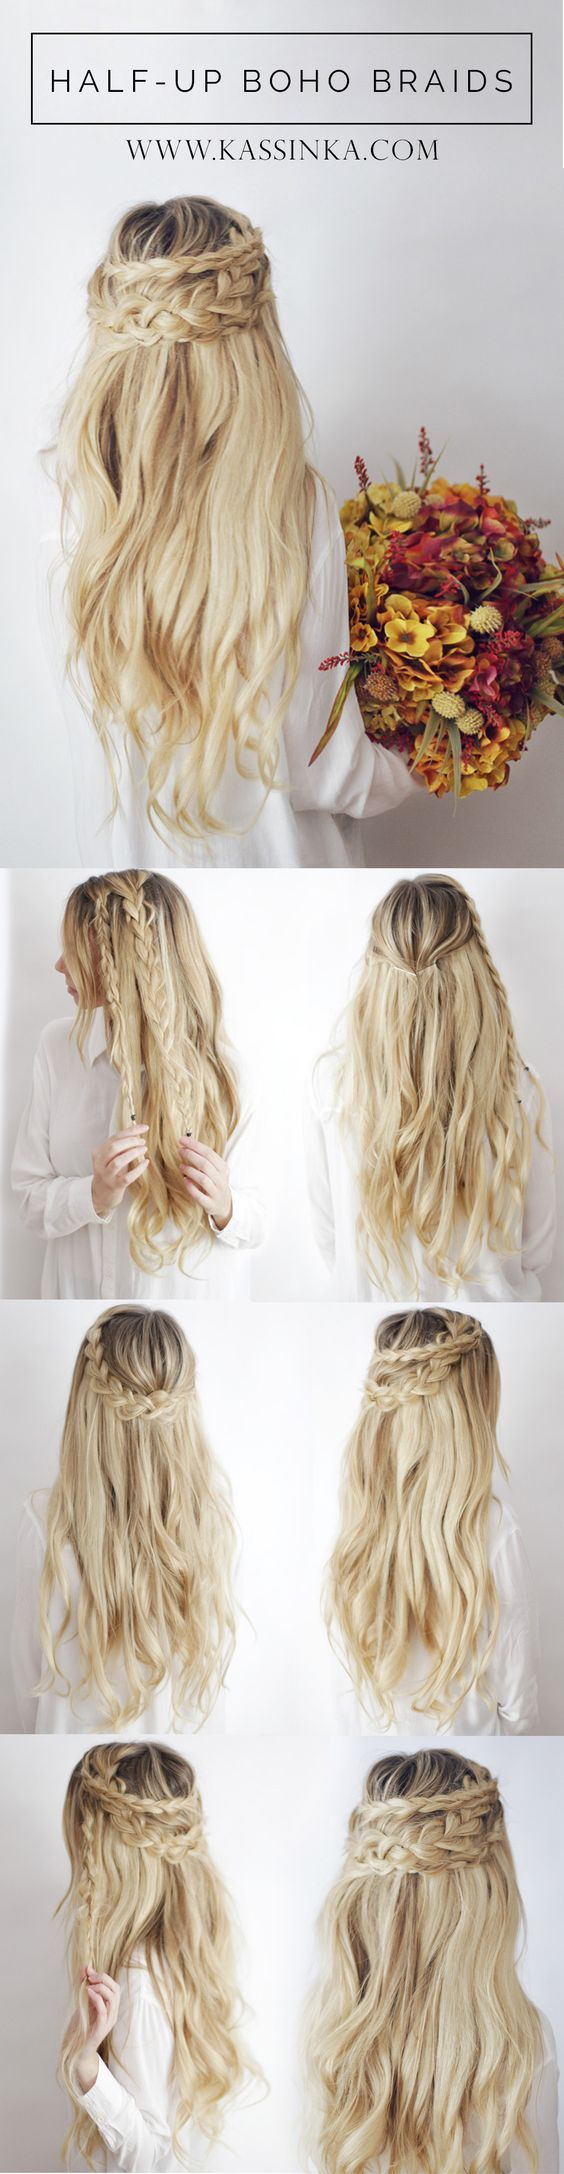 best hair ideas images on pinterest hairstyle ideas hair style